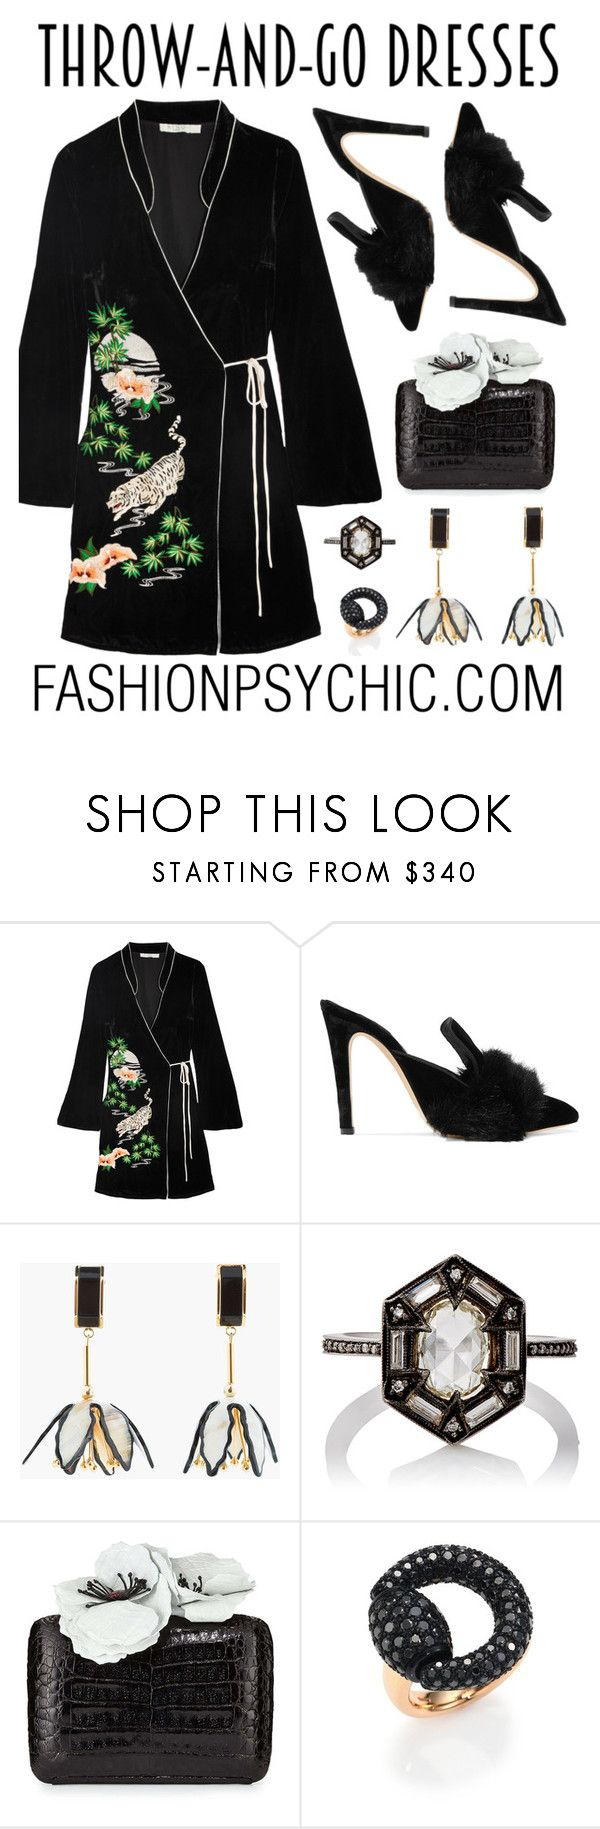 """""""Throw And Go Dress"""" by fashionpsychic on Polyvore featuring RIXO London, Sanayi 313, Marni, Cathy Waterman, Nancy Gonzalez, Gucci and easydresses"""